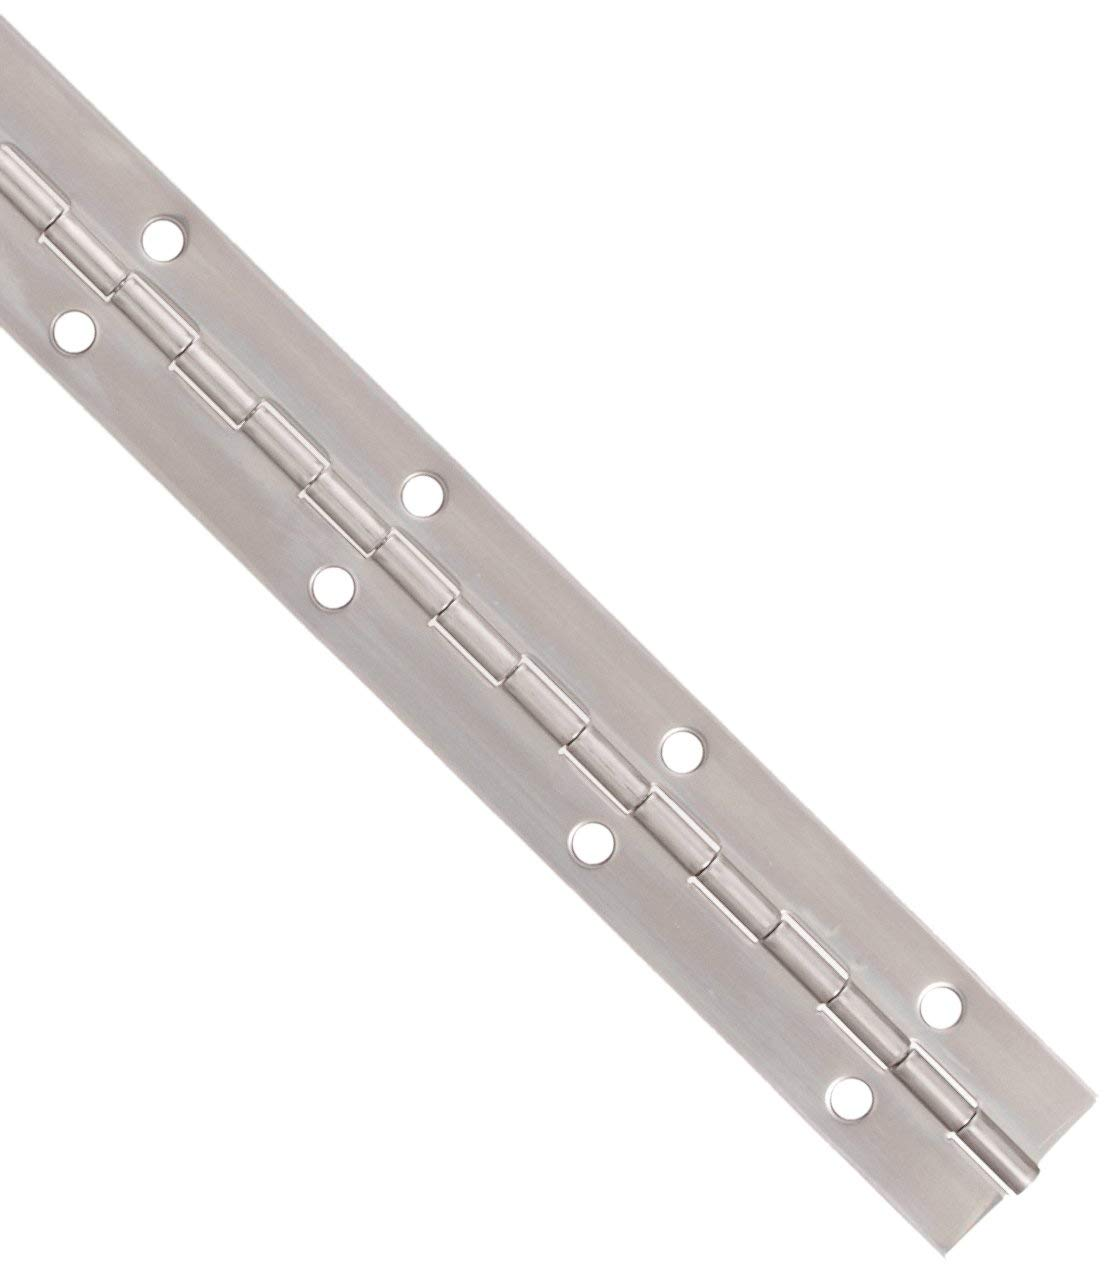 Stainless Steel Continuous Hinge with Hole Bright Annealed Finish 4 Feet, 2 Inches